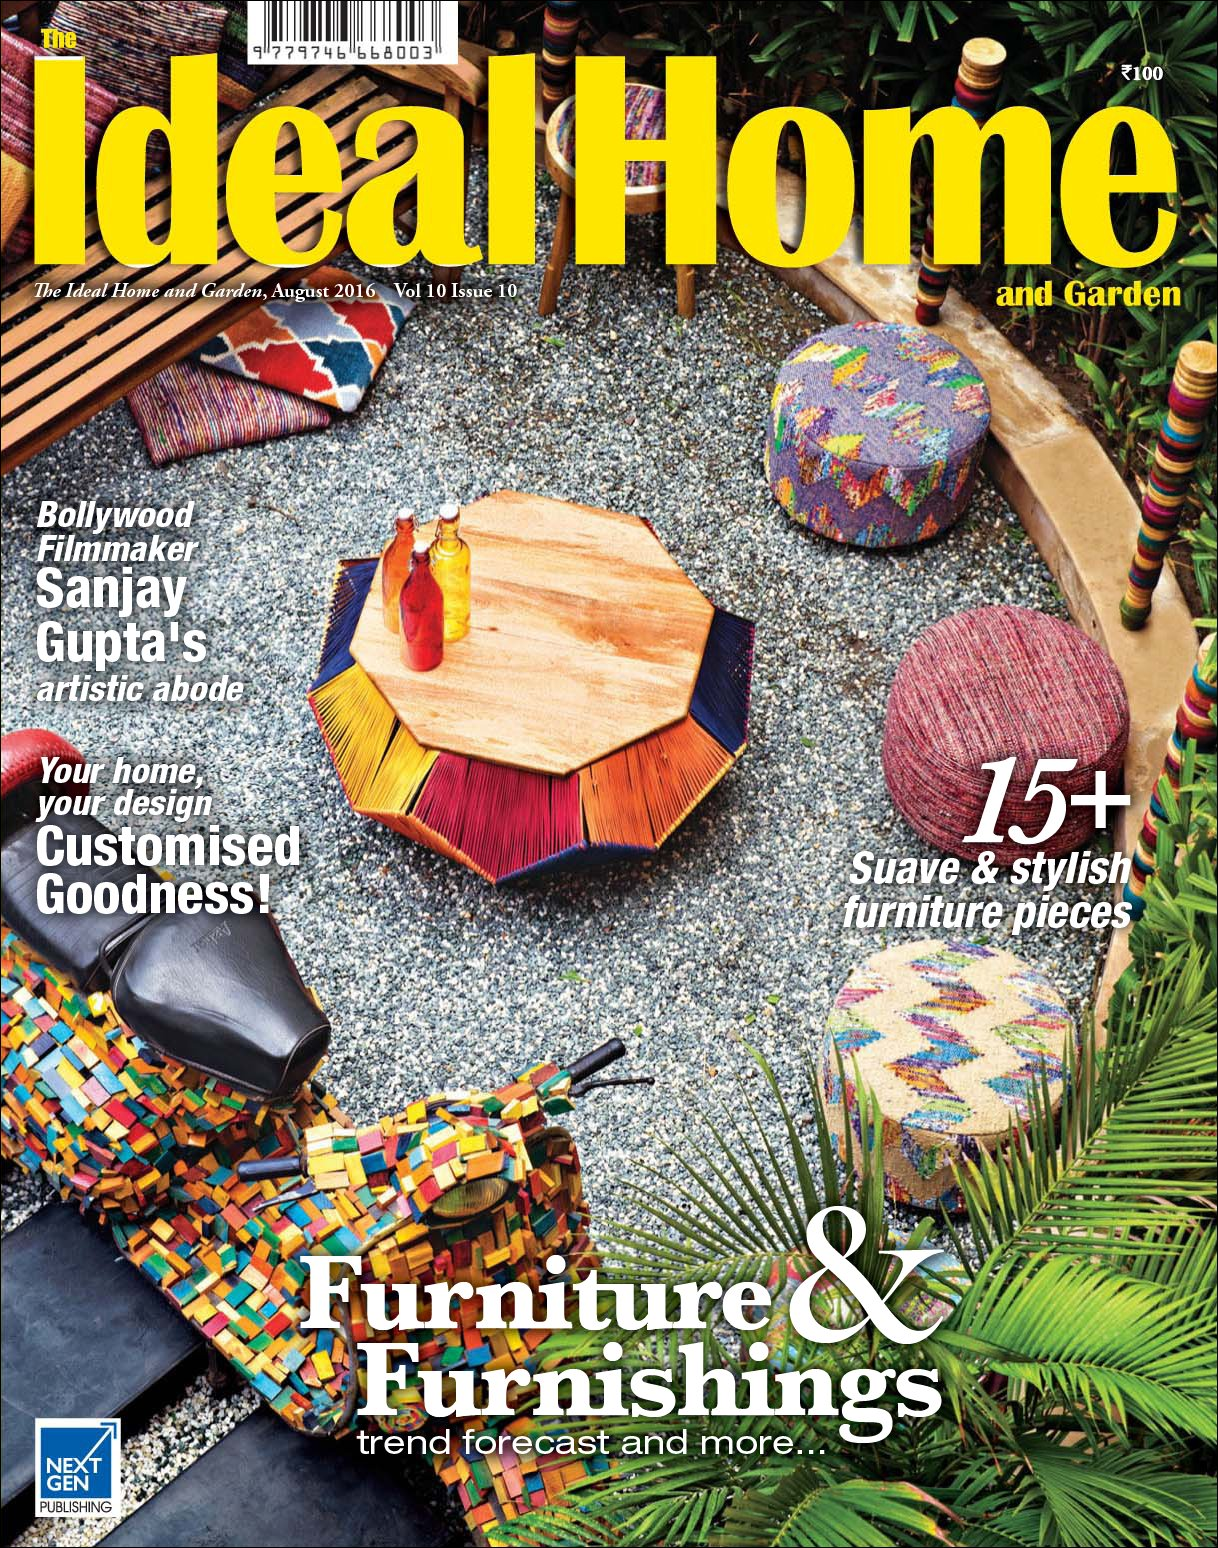 Ideal Home August 2016